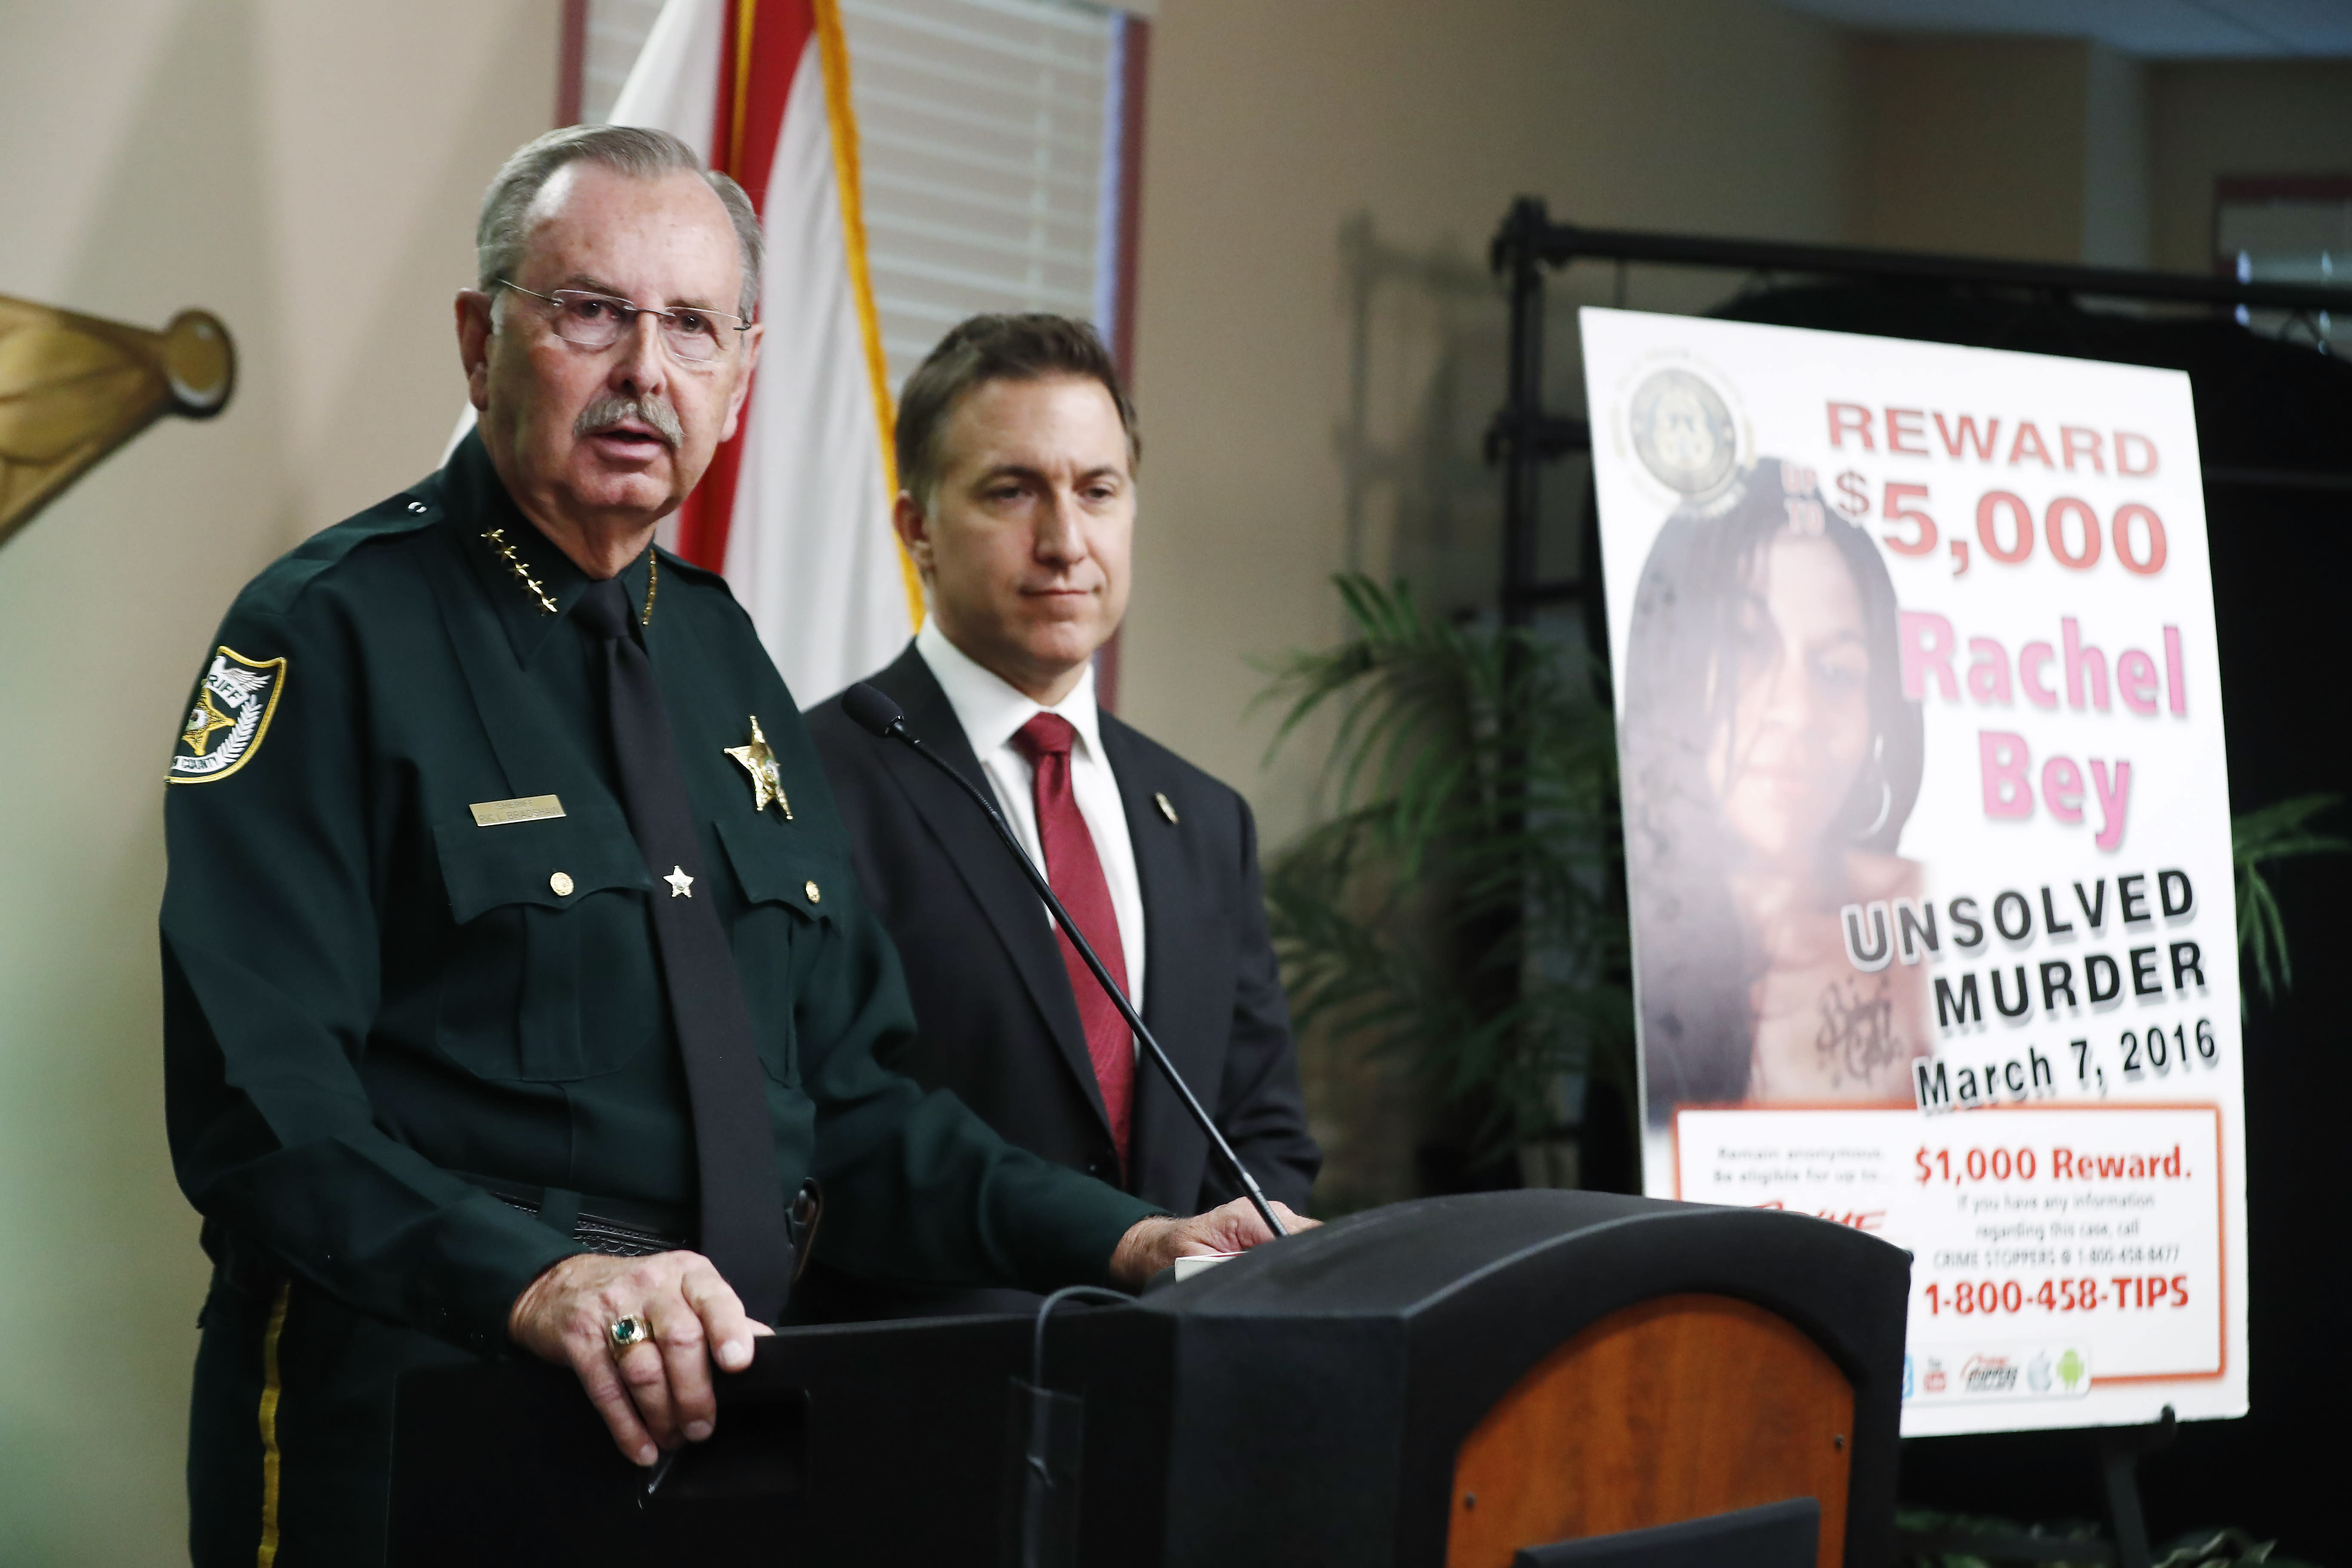 REMOVES AGE REFERENCE - Palm Beach County Sheriff Ric Bradshaw speaks during a news conference on Monday, Sept. 16, 2019, in West Palm Beach, Fla. Palm Beach County Sheriff's officials said Monday they arrested Hayes for first degree murder in Rachel Bey's death. (AP Photo/Brynn Anderson)